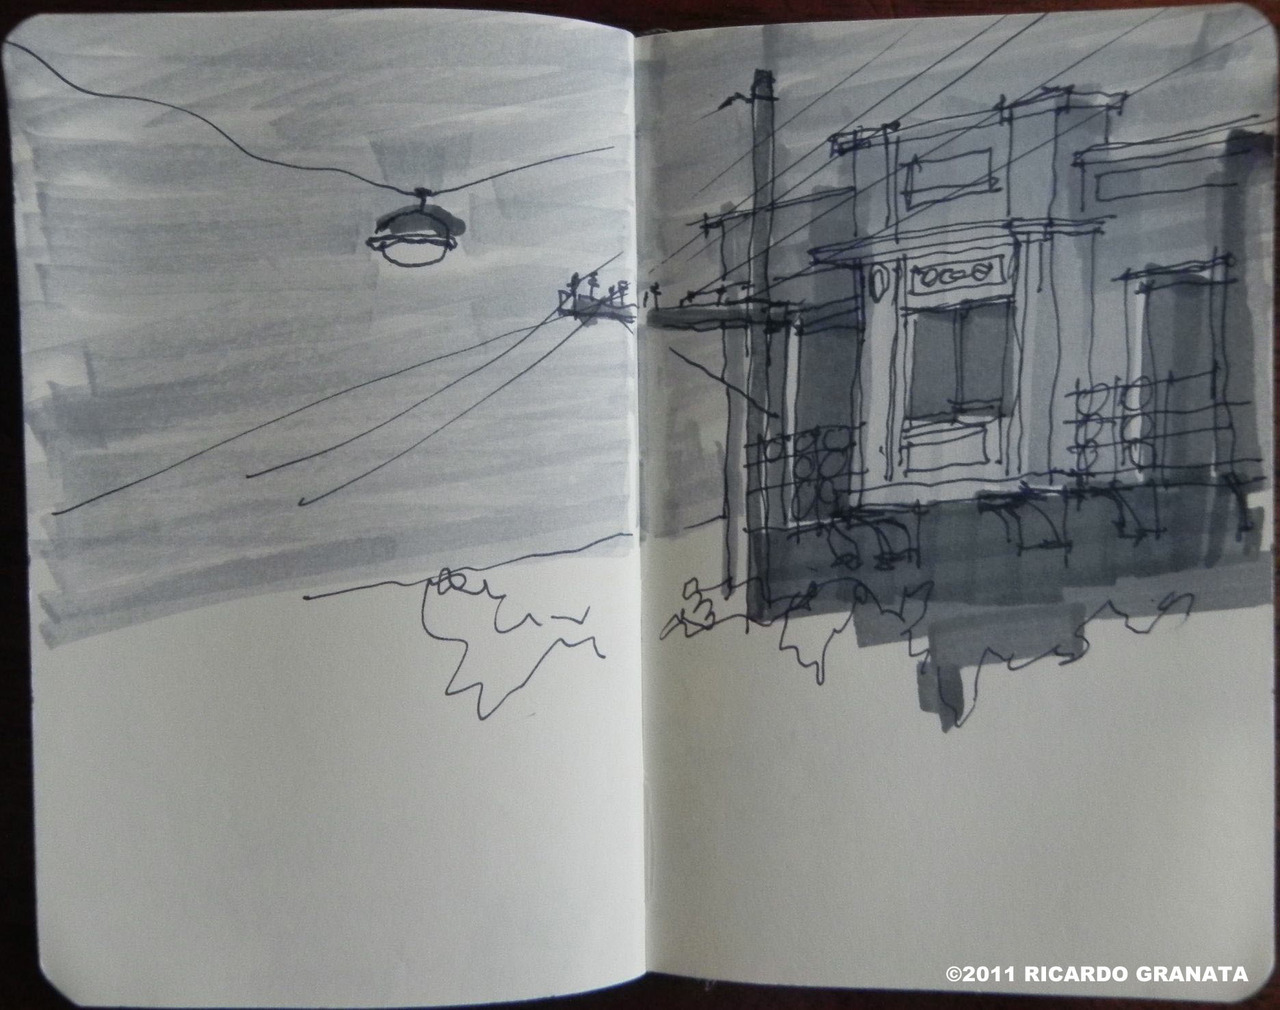 """MOOCA, SAO PAULO, BRAZIL"" EVERYTHING I DRAW EVERY DAY:  http://dailysketchesblog.tumblr.com/ http://www.facebook.com/pages/Daily-Sketches/352568288166398 http://pinterest.com/ricgranata/daily-sketches/"